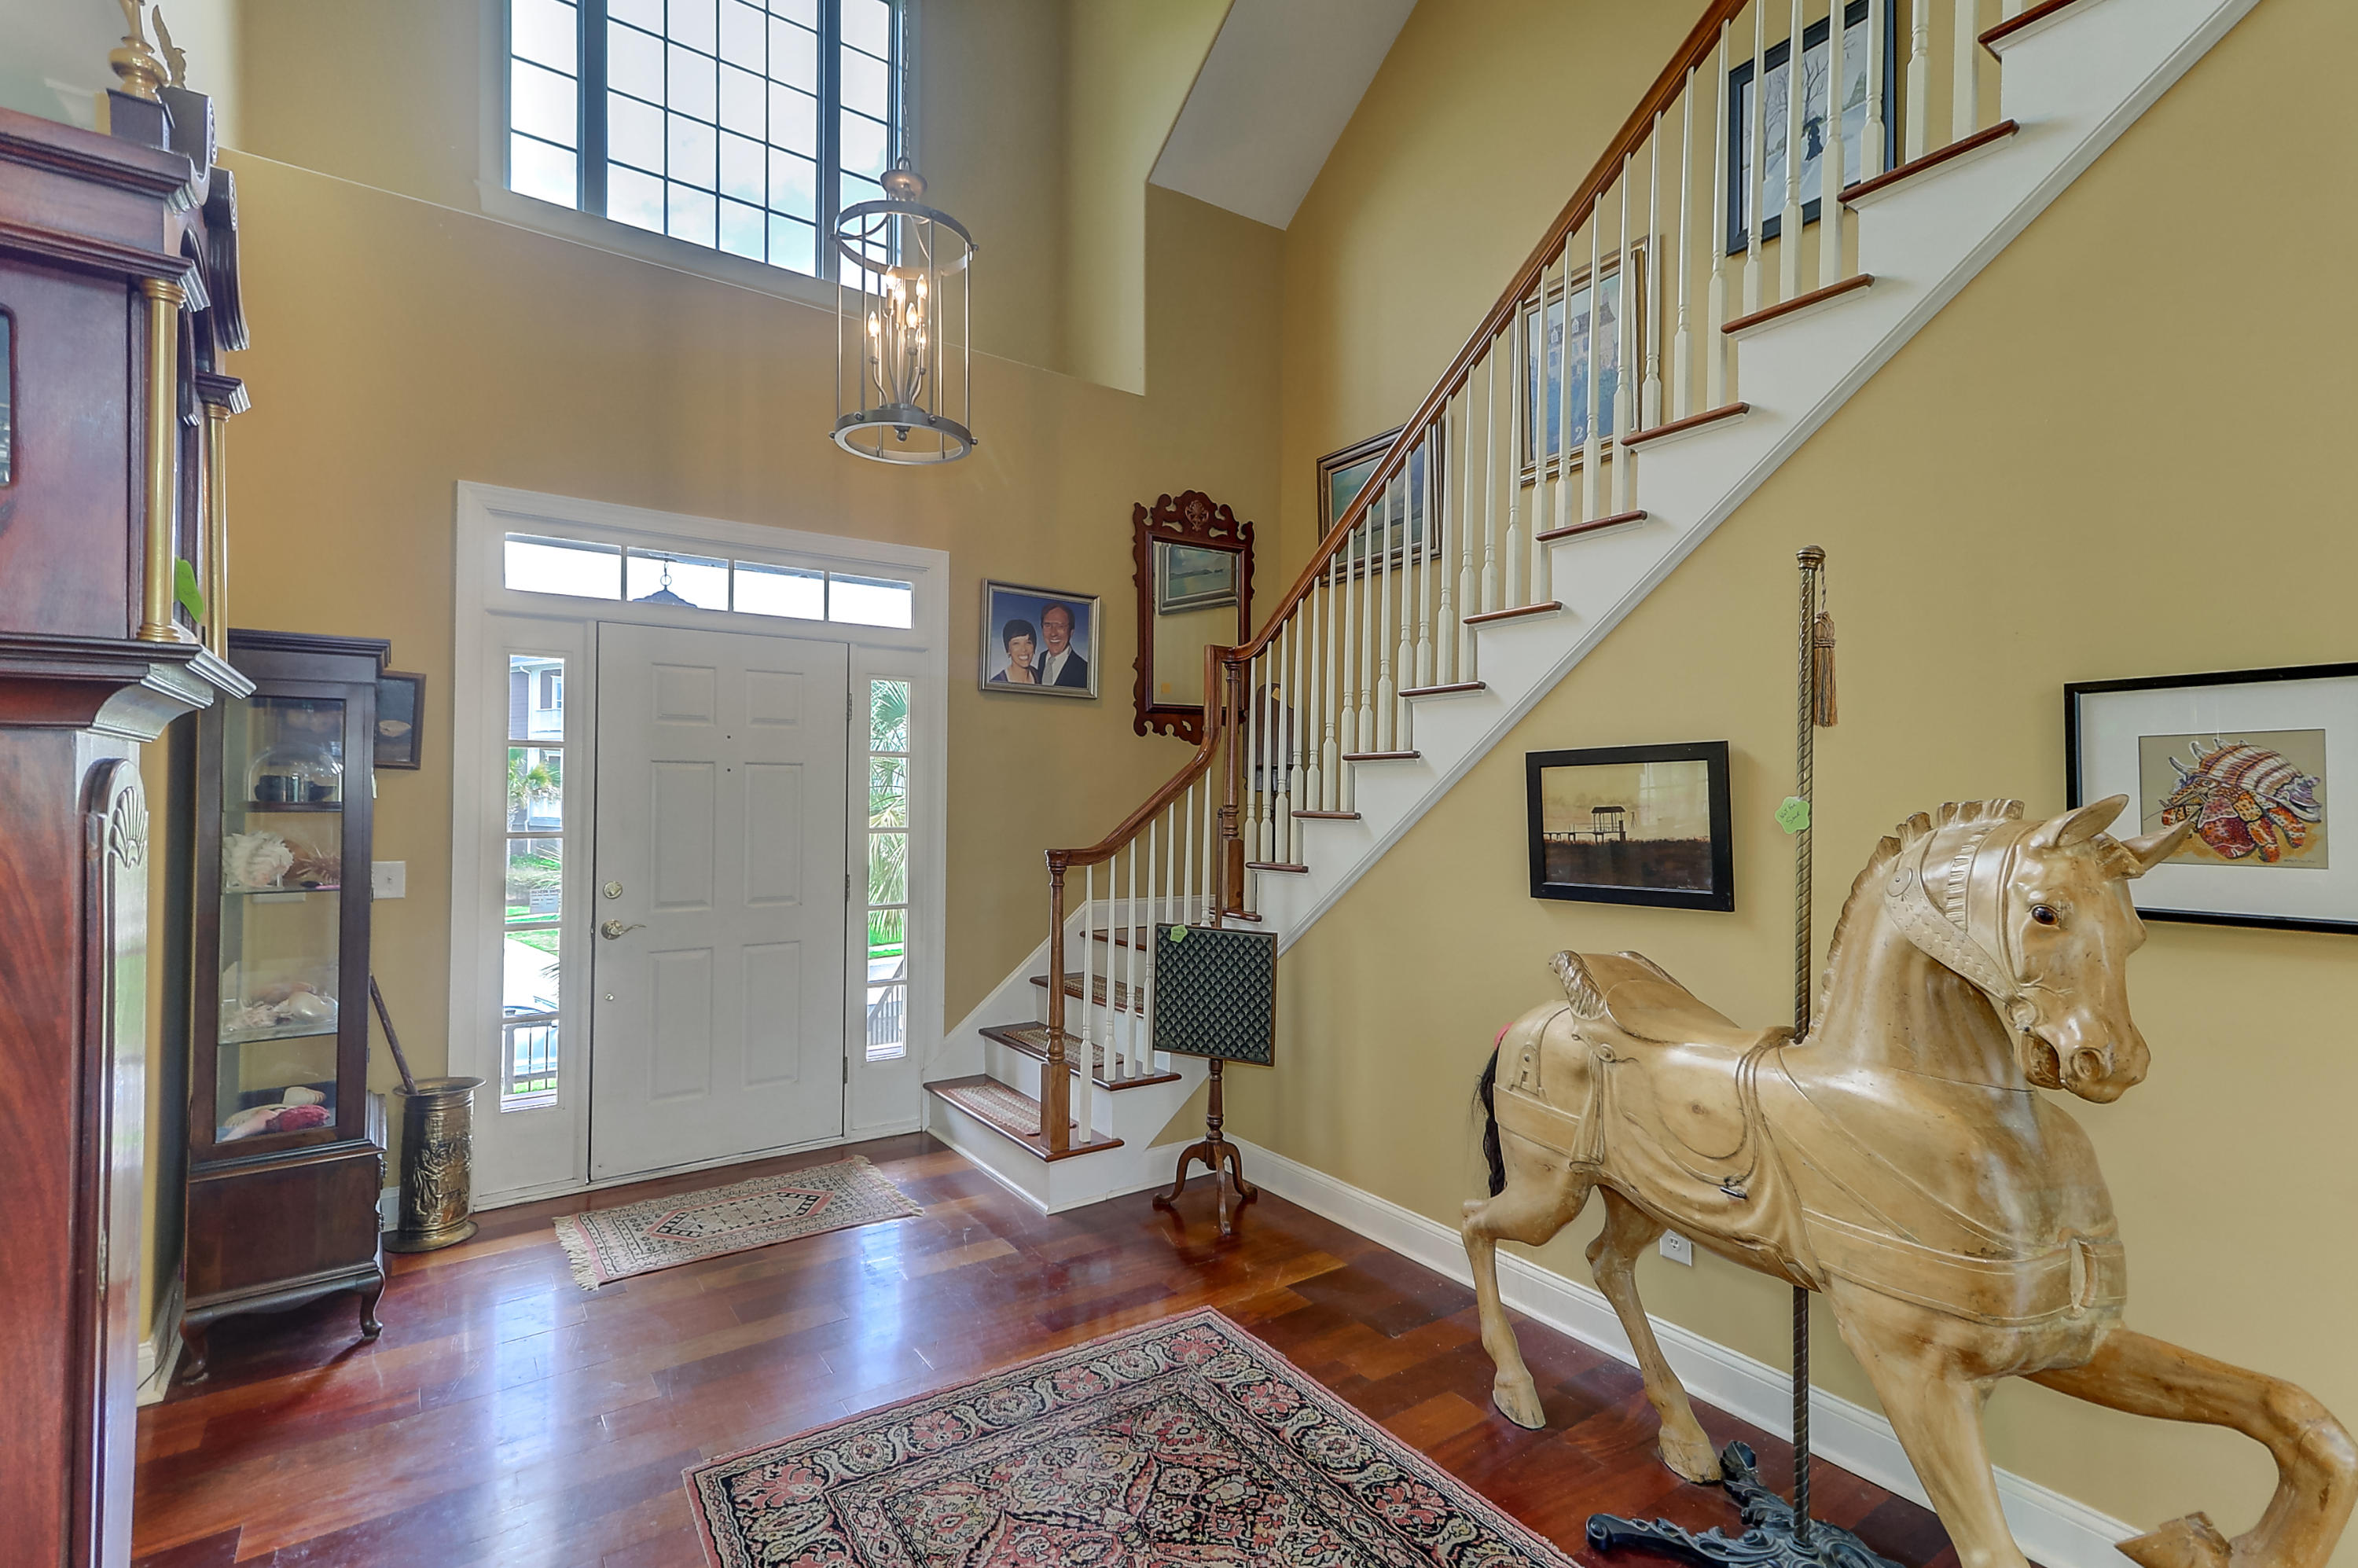 Beresford Creek Landing Homes For Sale - 1101 Beresford Run, Charleston, SC - 22